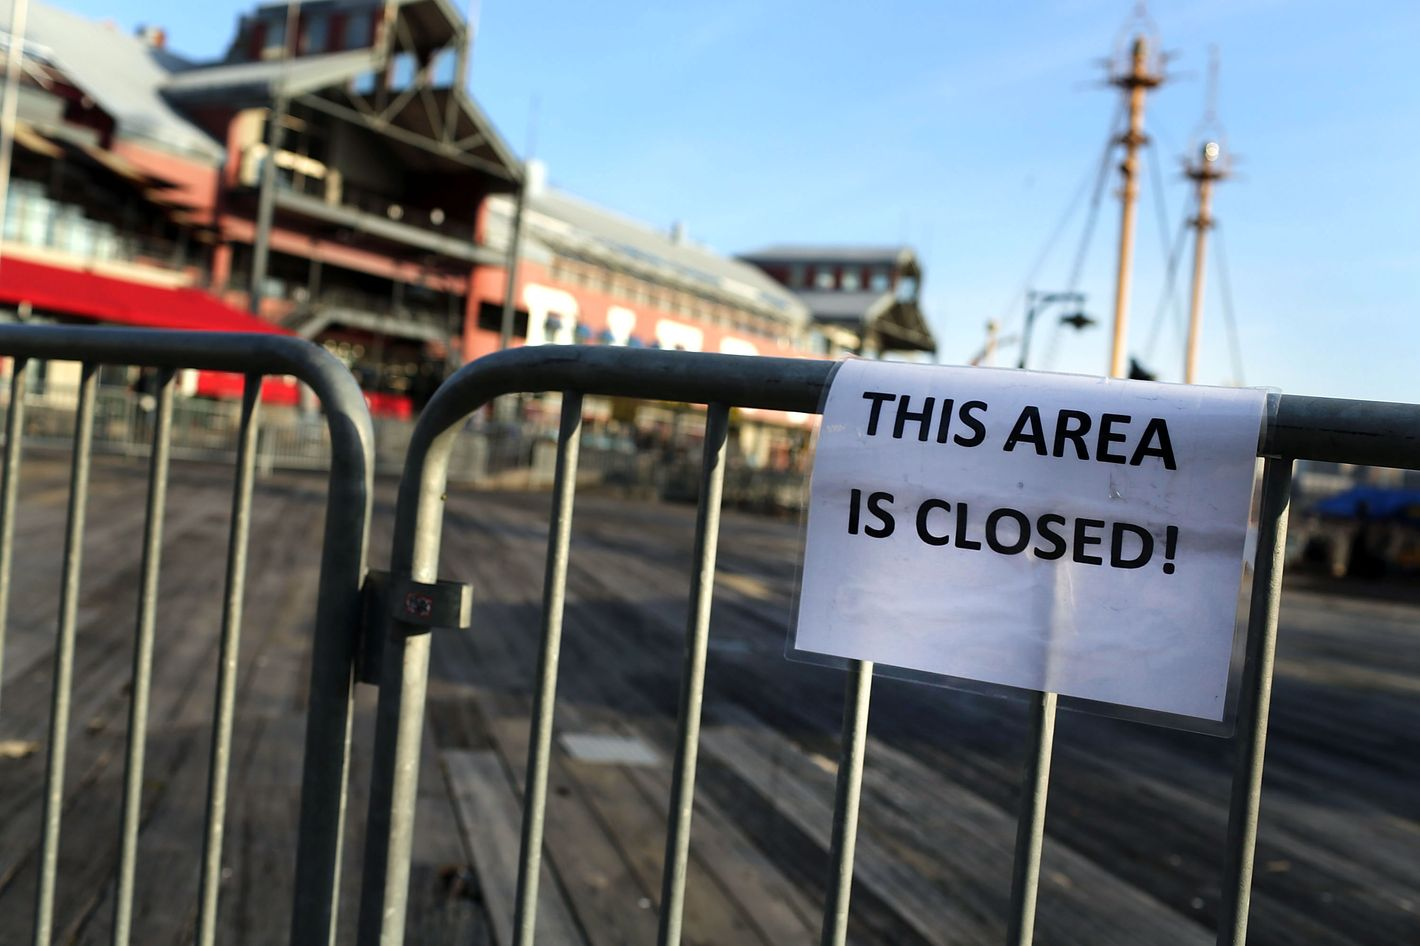 """A sign is posted that reads """"THIS AREA IS CLOSED!"""" on the flood damaged pier affected by Superstorm Sandy at South Street Seaport is closed and empty of tourists on December 3, 2012 in New York City. South Street Seaport, an area popular with tourists which was about to go through a major redevelopment, suffered severe damage from Hurricane Sandy. Most of the buildings and businesses, including the South Street Seaport Museum, suffered severe flooding and remained closed. According to a new Siena Research Institute poll, most New Yorkers overwhelmingly agree that climate change was behind Hurricane Sandy."""